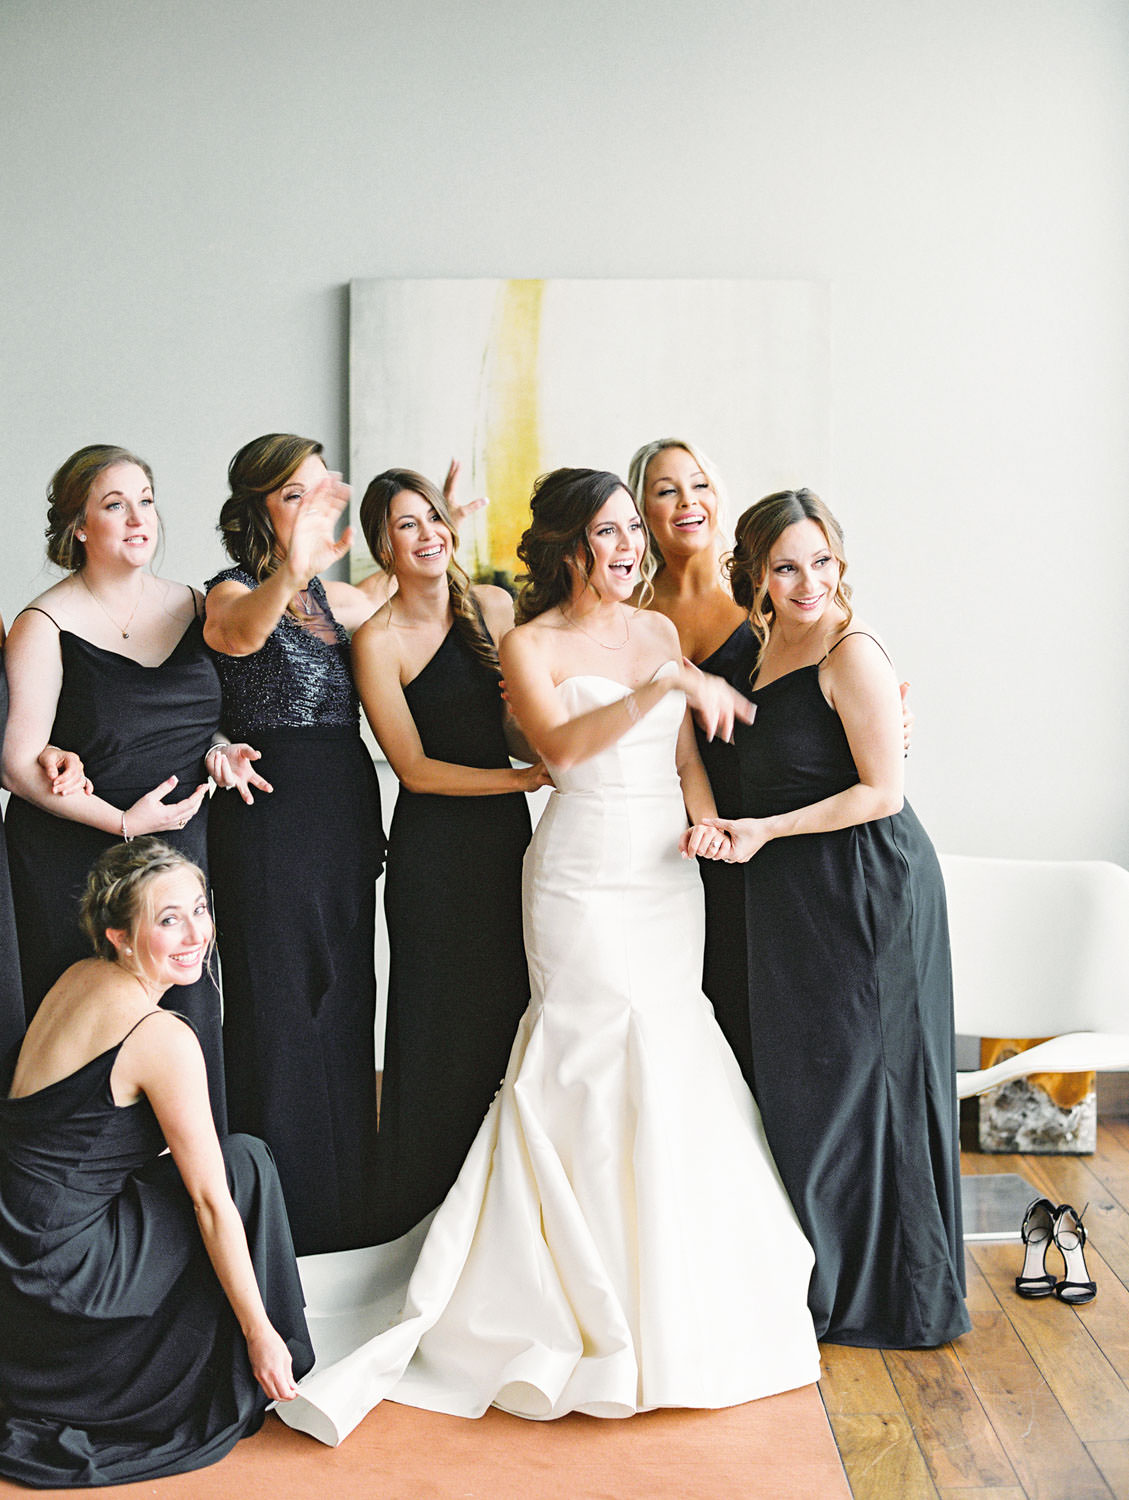 Bride getting into wedding gown with bridesmaids, film photo by Cavin Elizabeth Photography